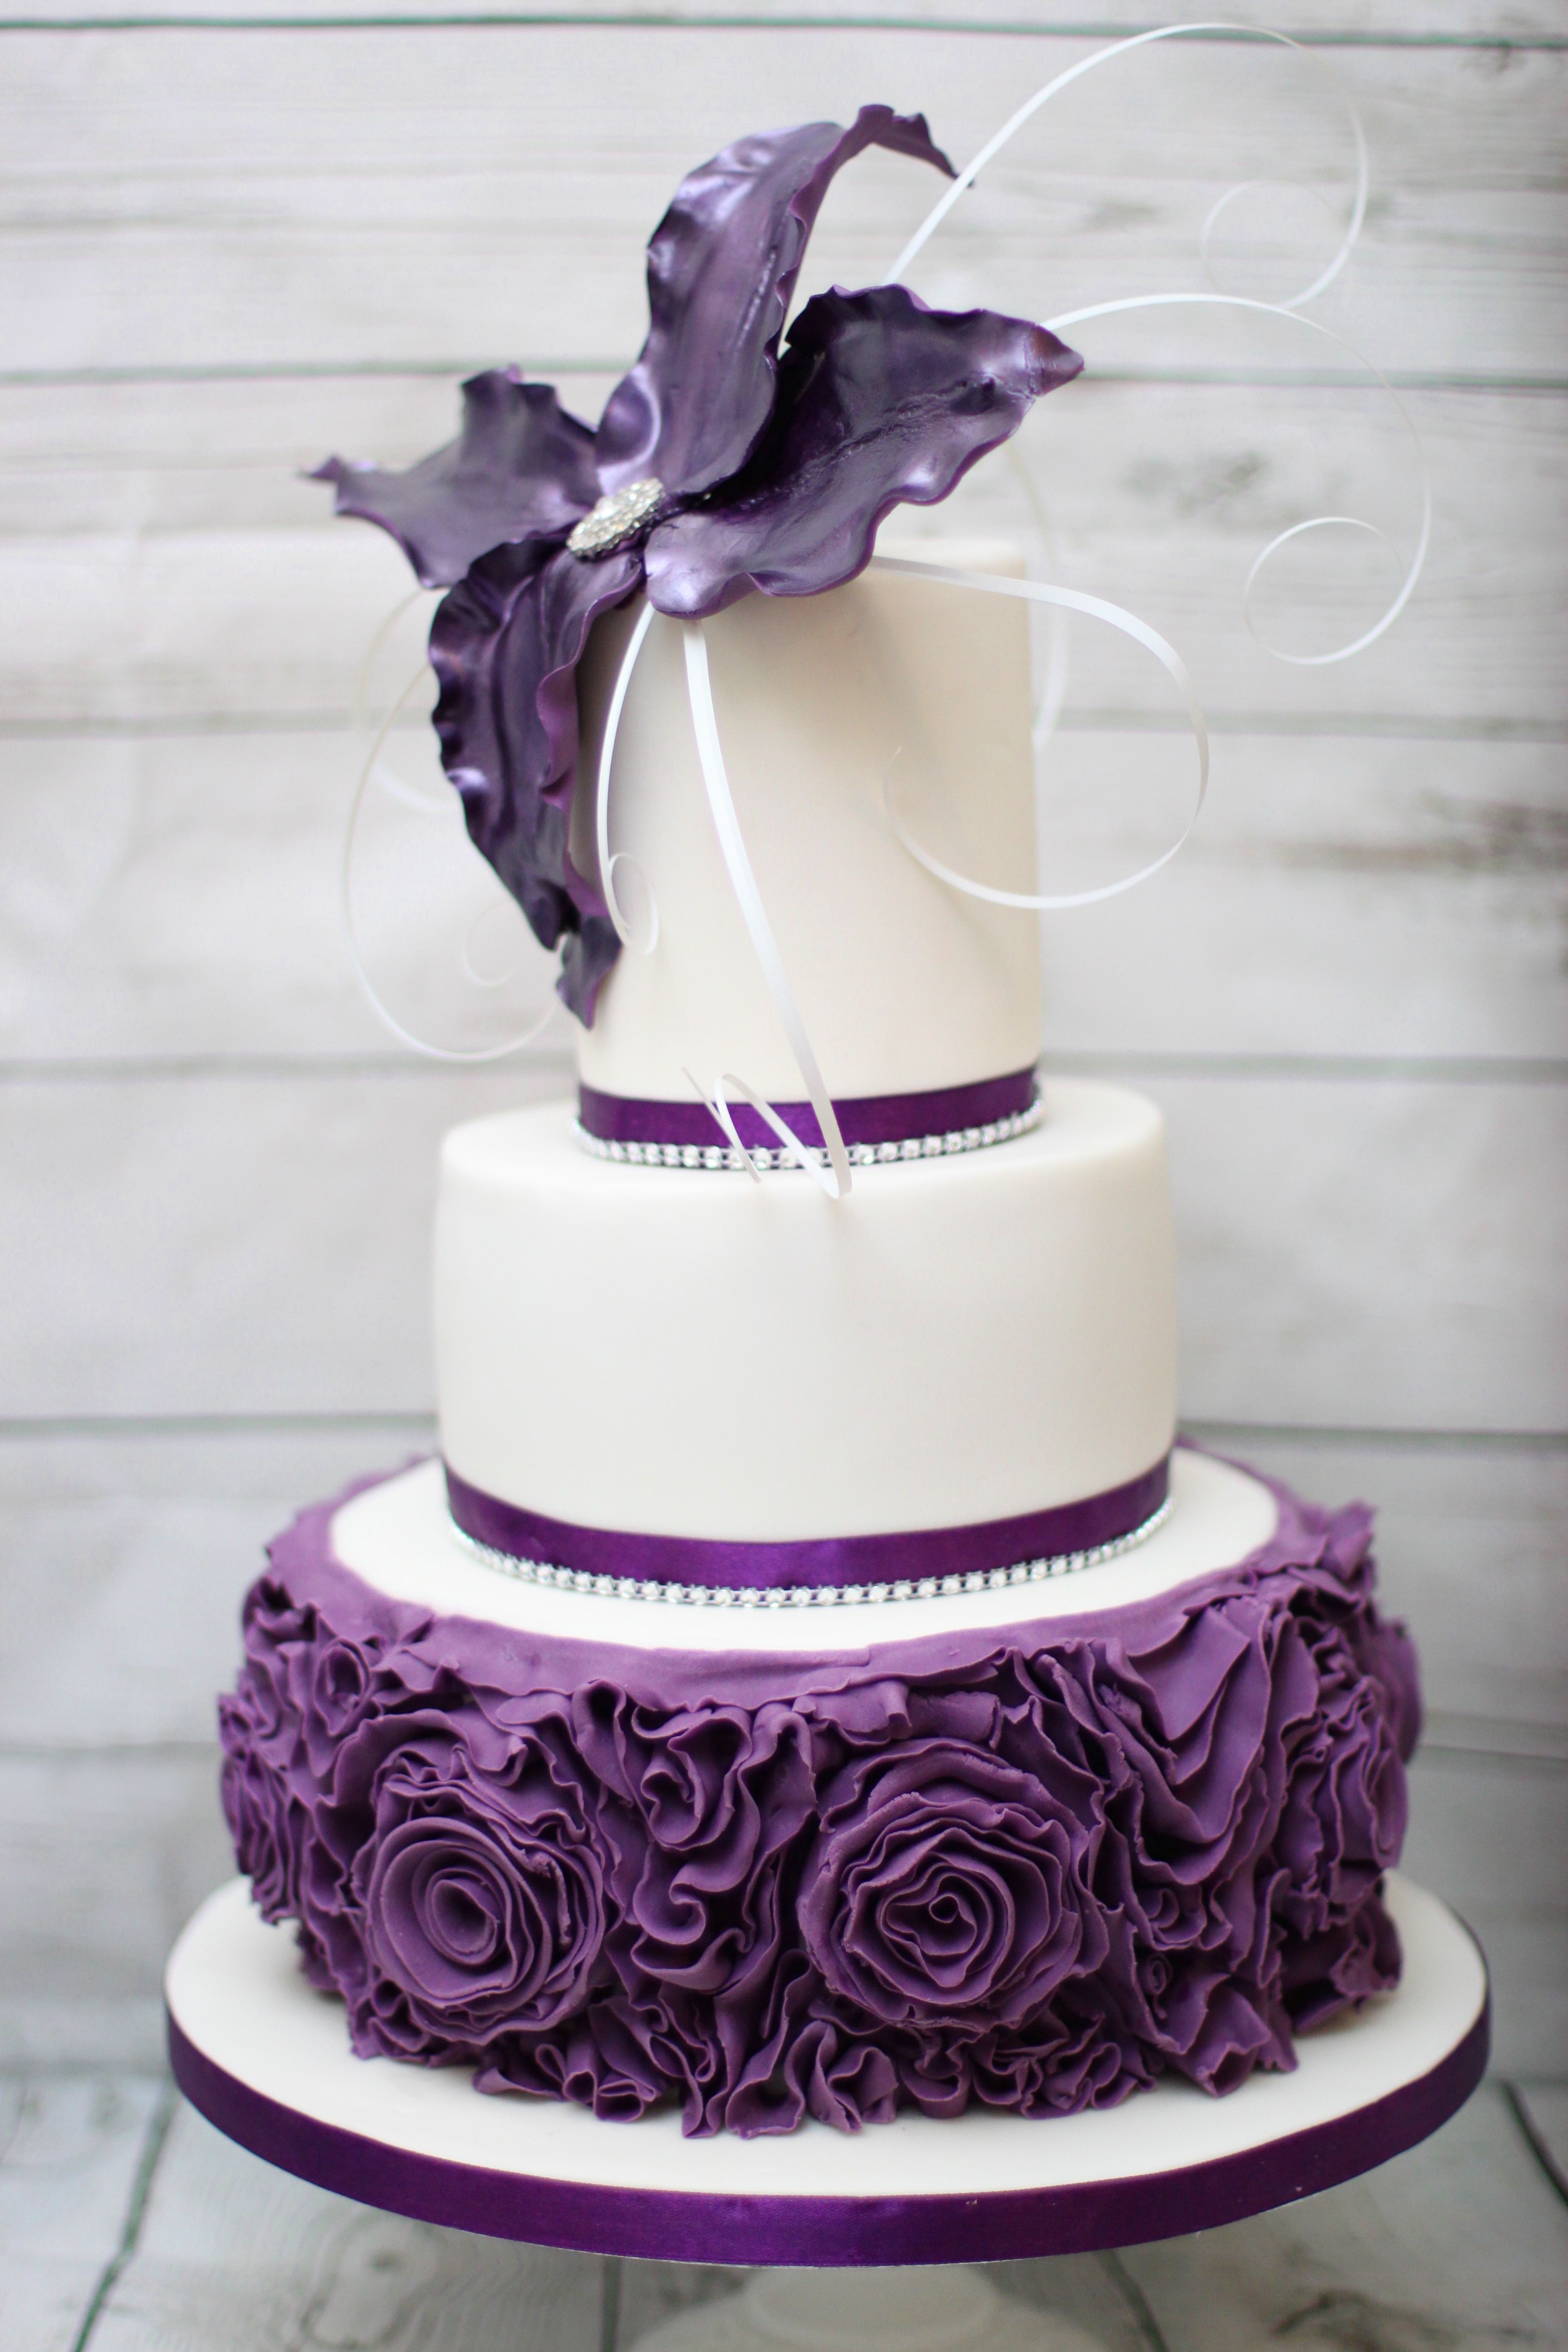 3 Tier Cadburys Purple Birthday Cake Ruffle Roses And Wired Flower